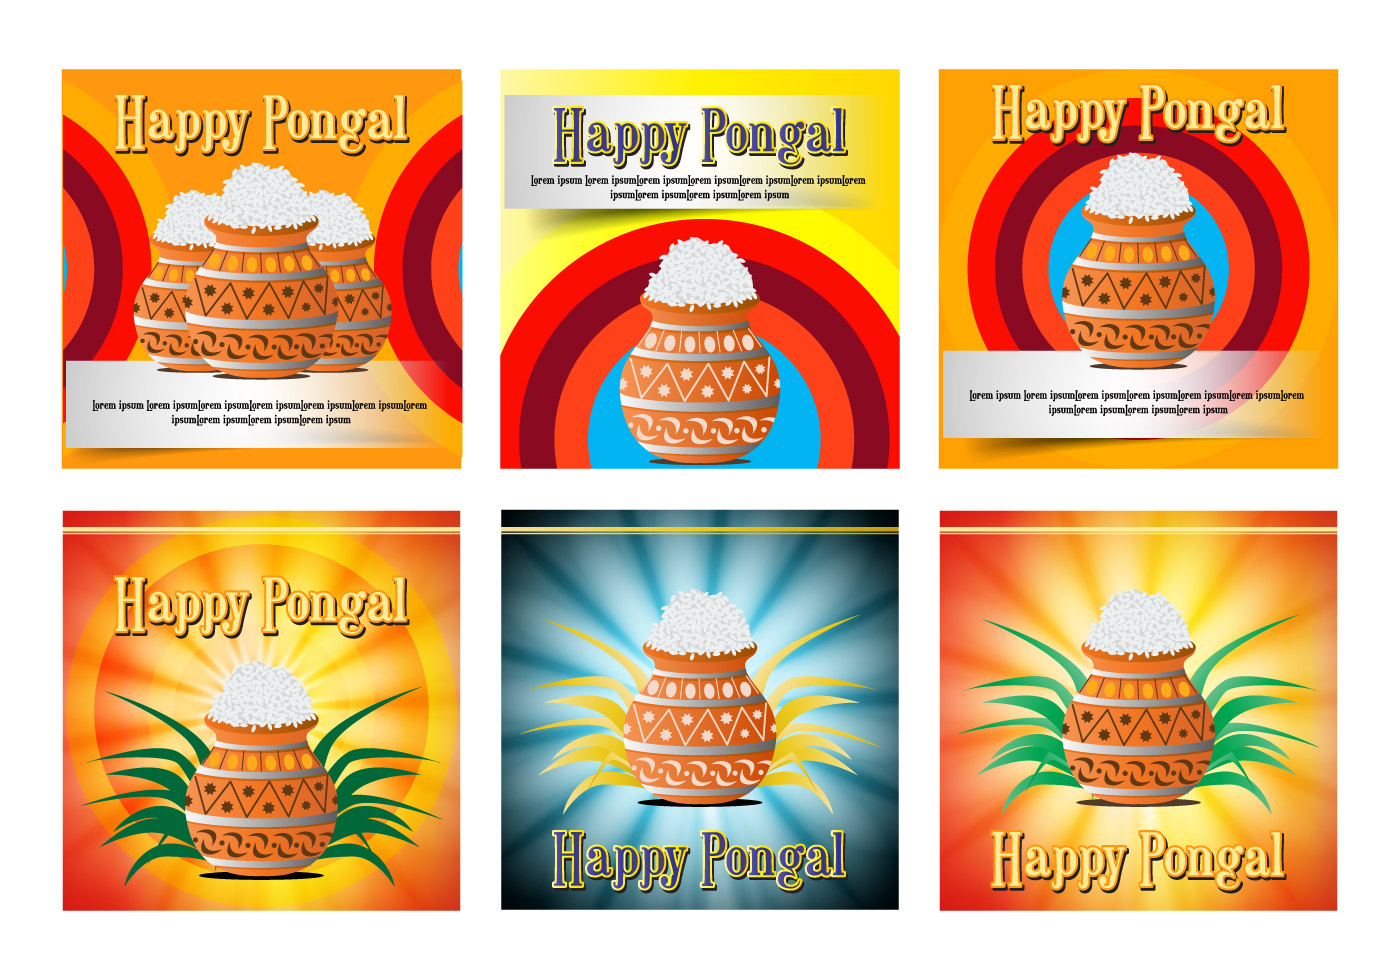 Happy Pongal Celebration Card Poster Download Free Vector Art